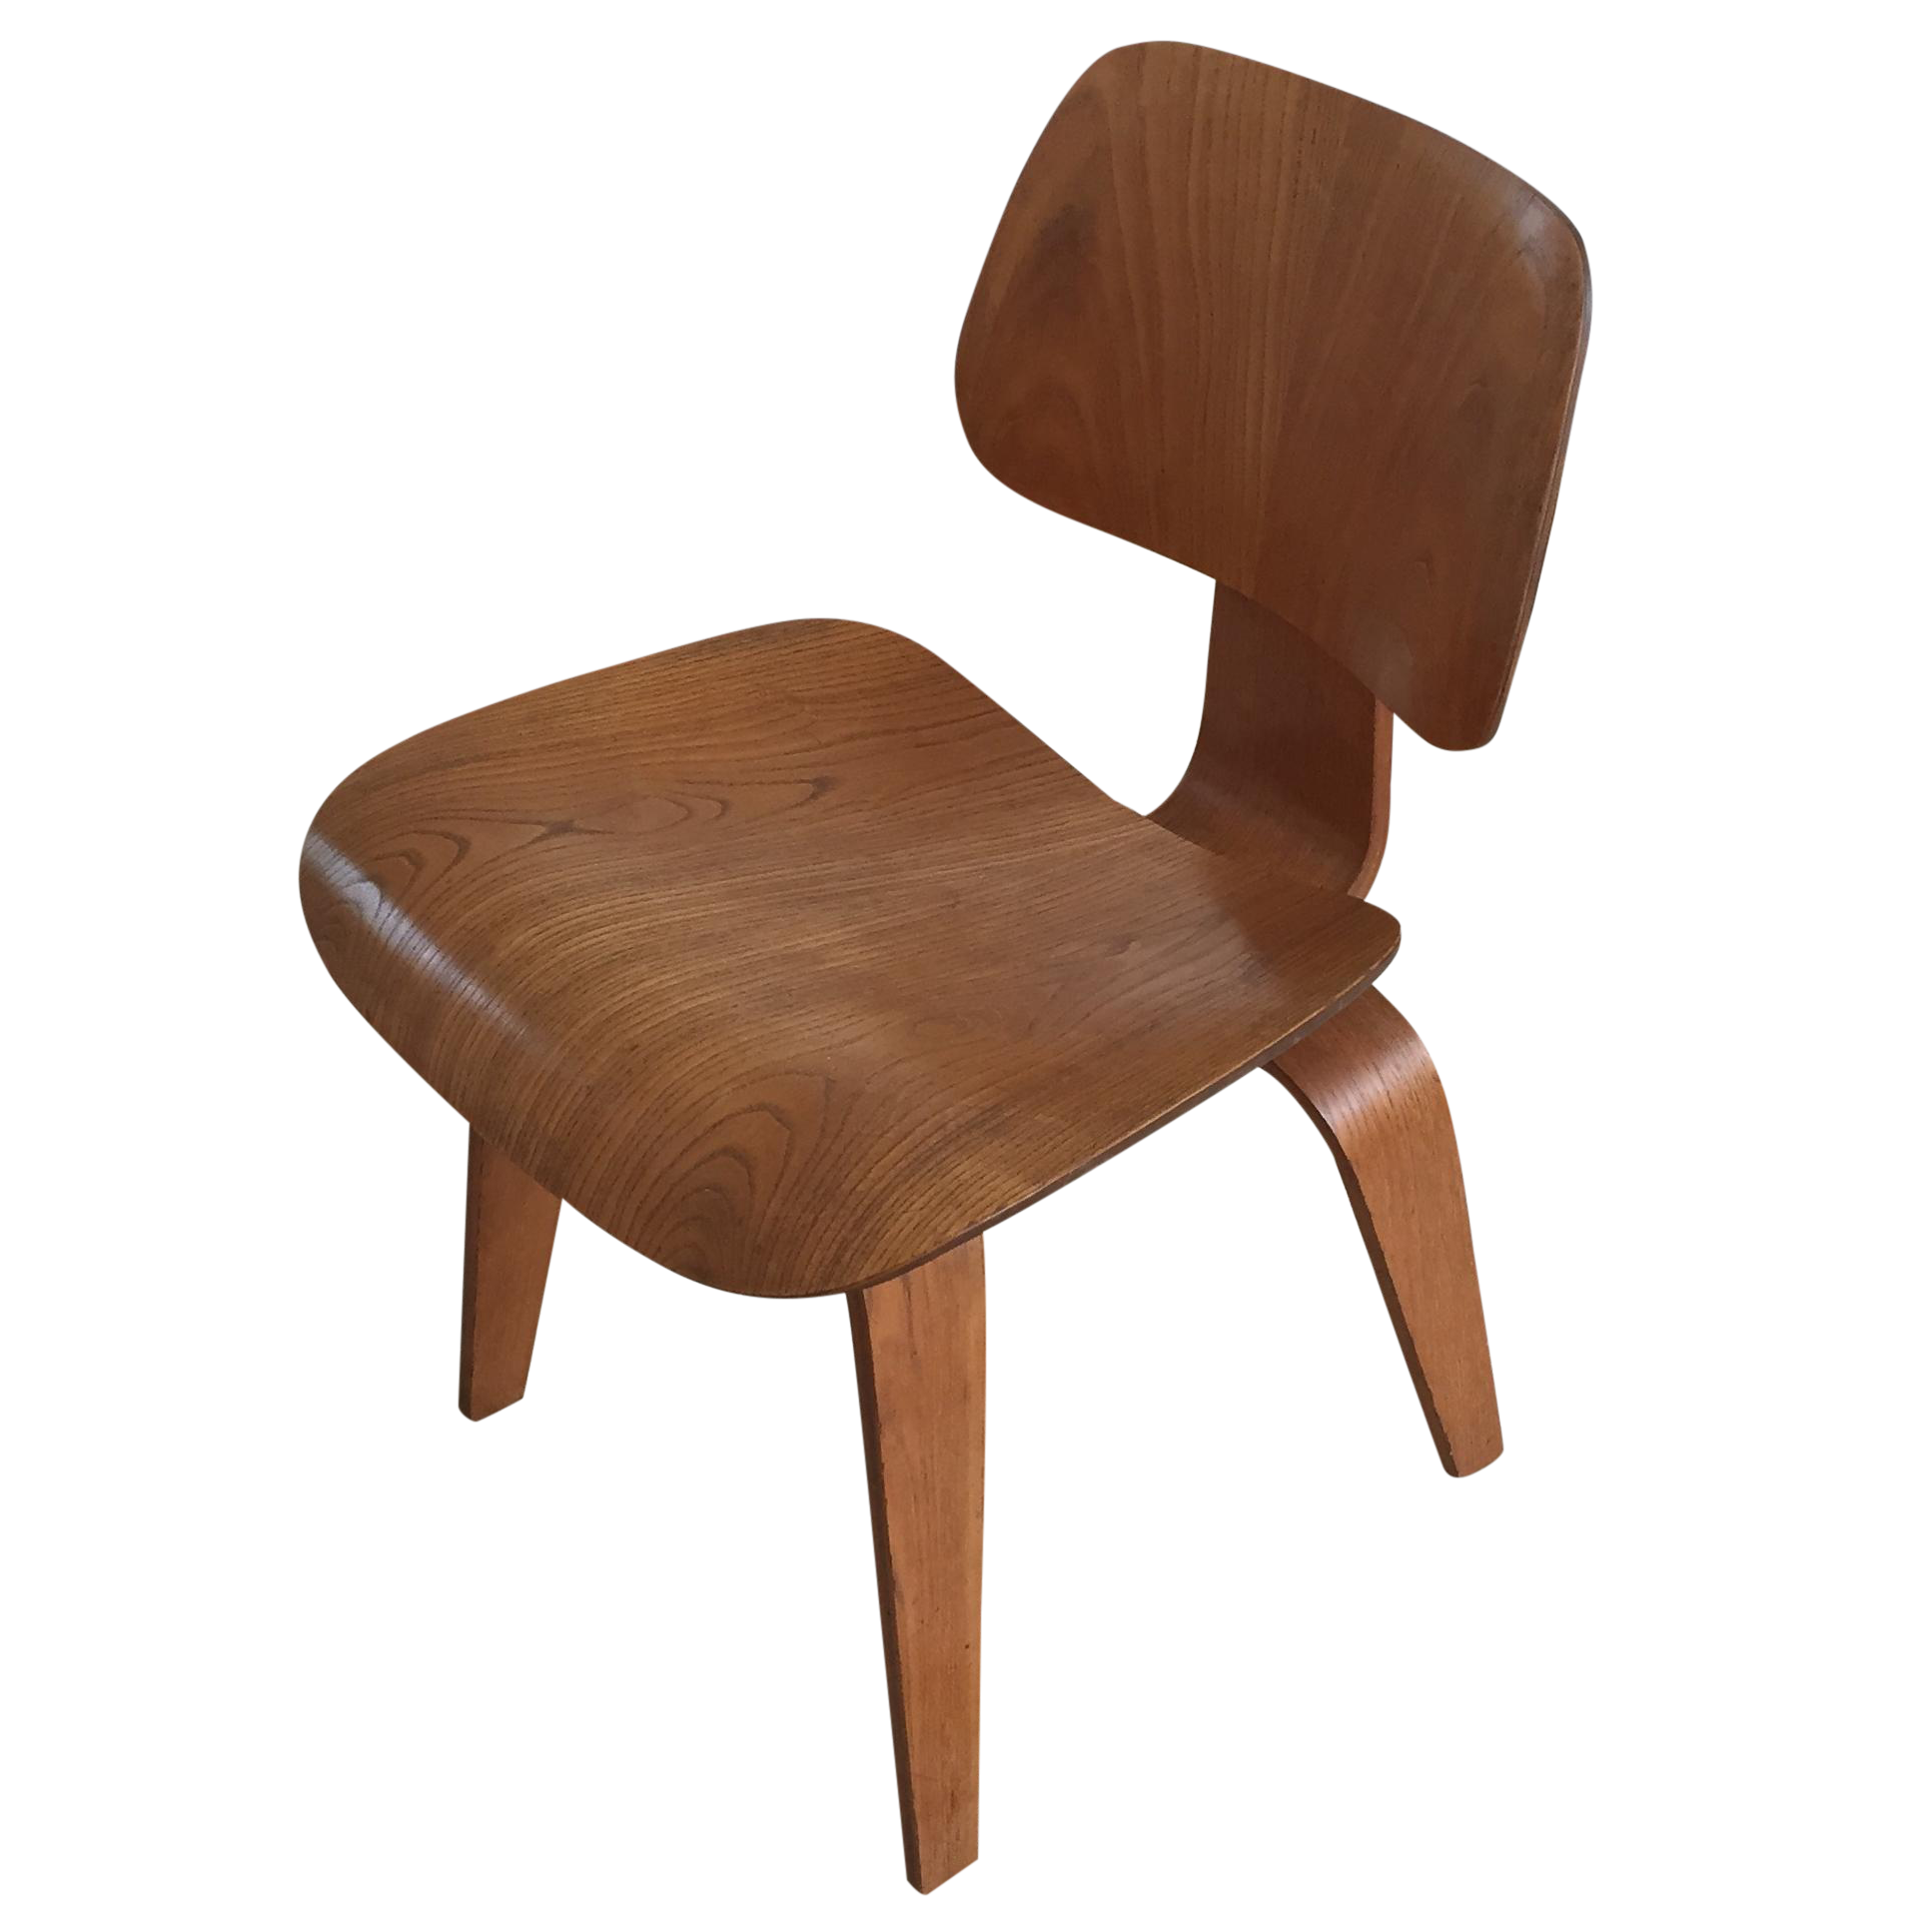 Mid Century Eames Style Dcw Wood Dining Chair Chairish : 5899da4c 503e 4161 a16f bbdf4a7eea02aspectfitampwidth640ampheight640 from www.chairish.com size 640 x 640 jpeg 23kB